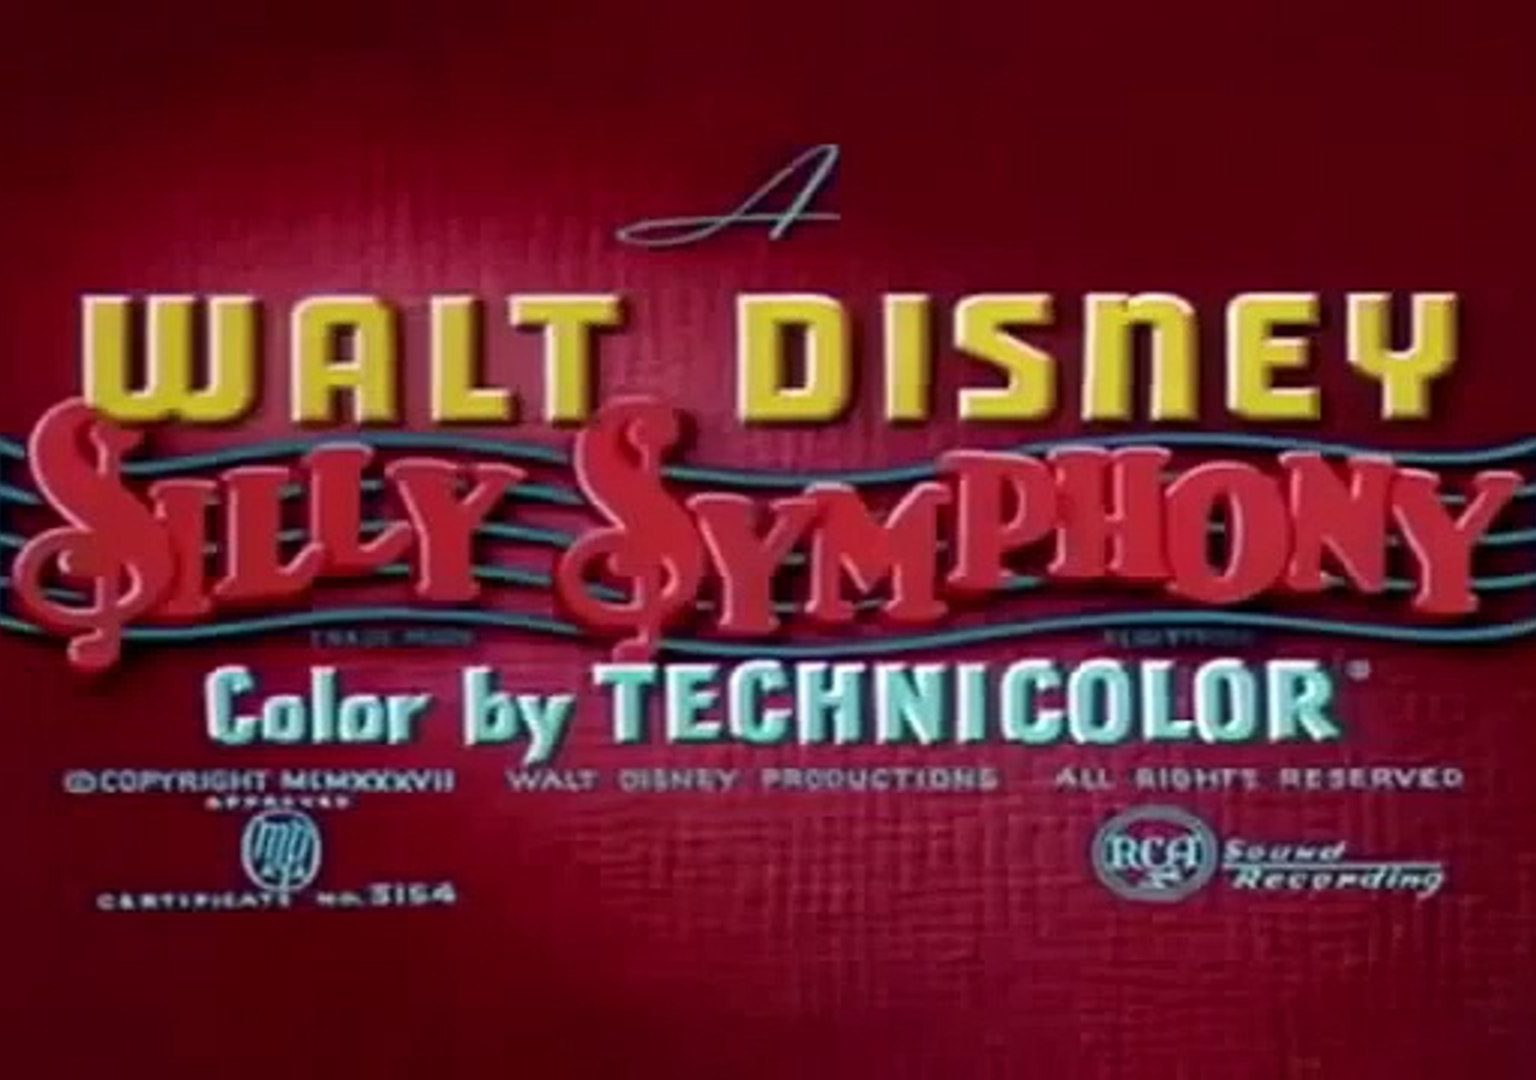 x1080 8 e1608216041204 20 Magical Facts You Might Not Have Known About Walt Disney